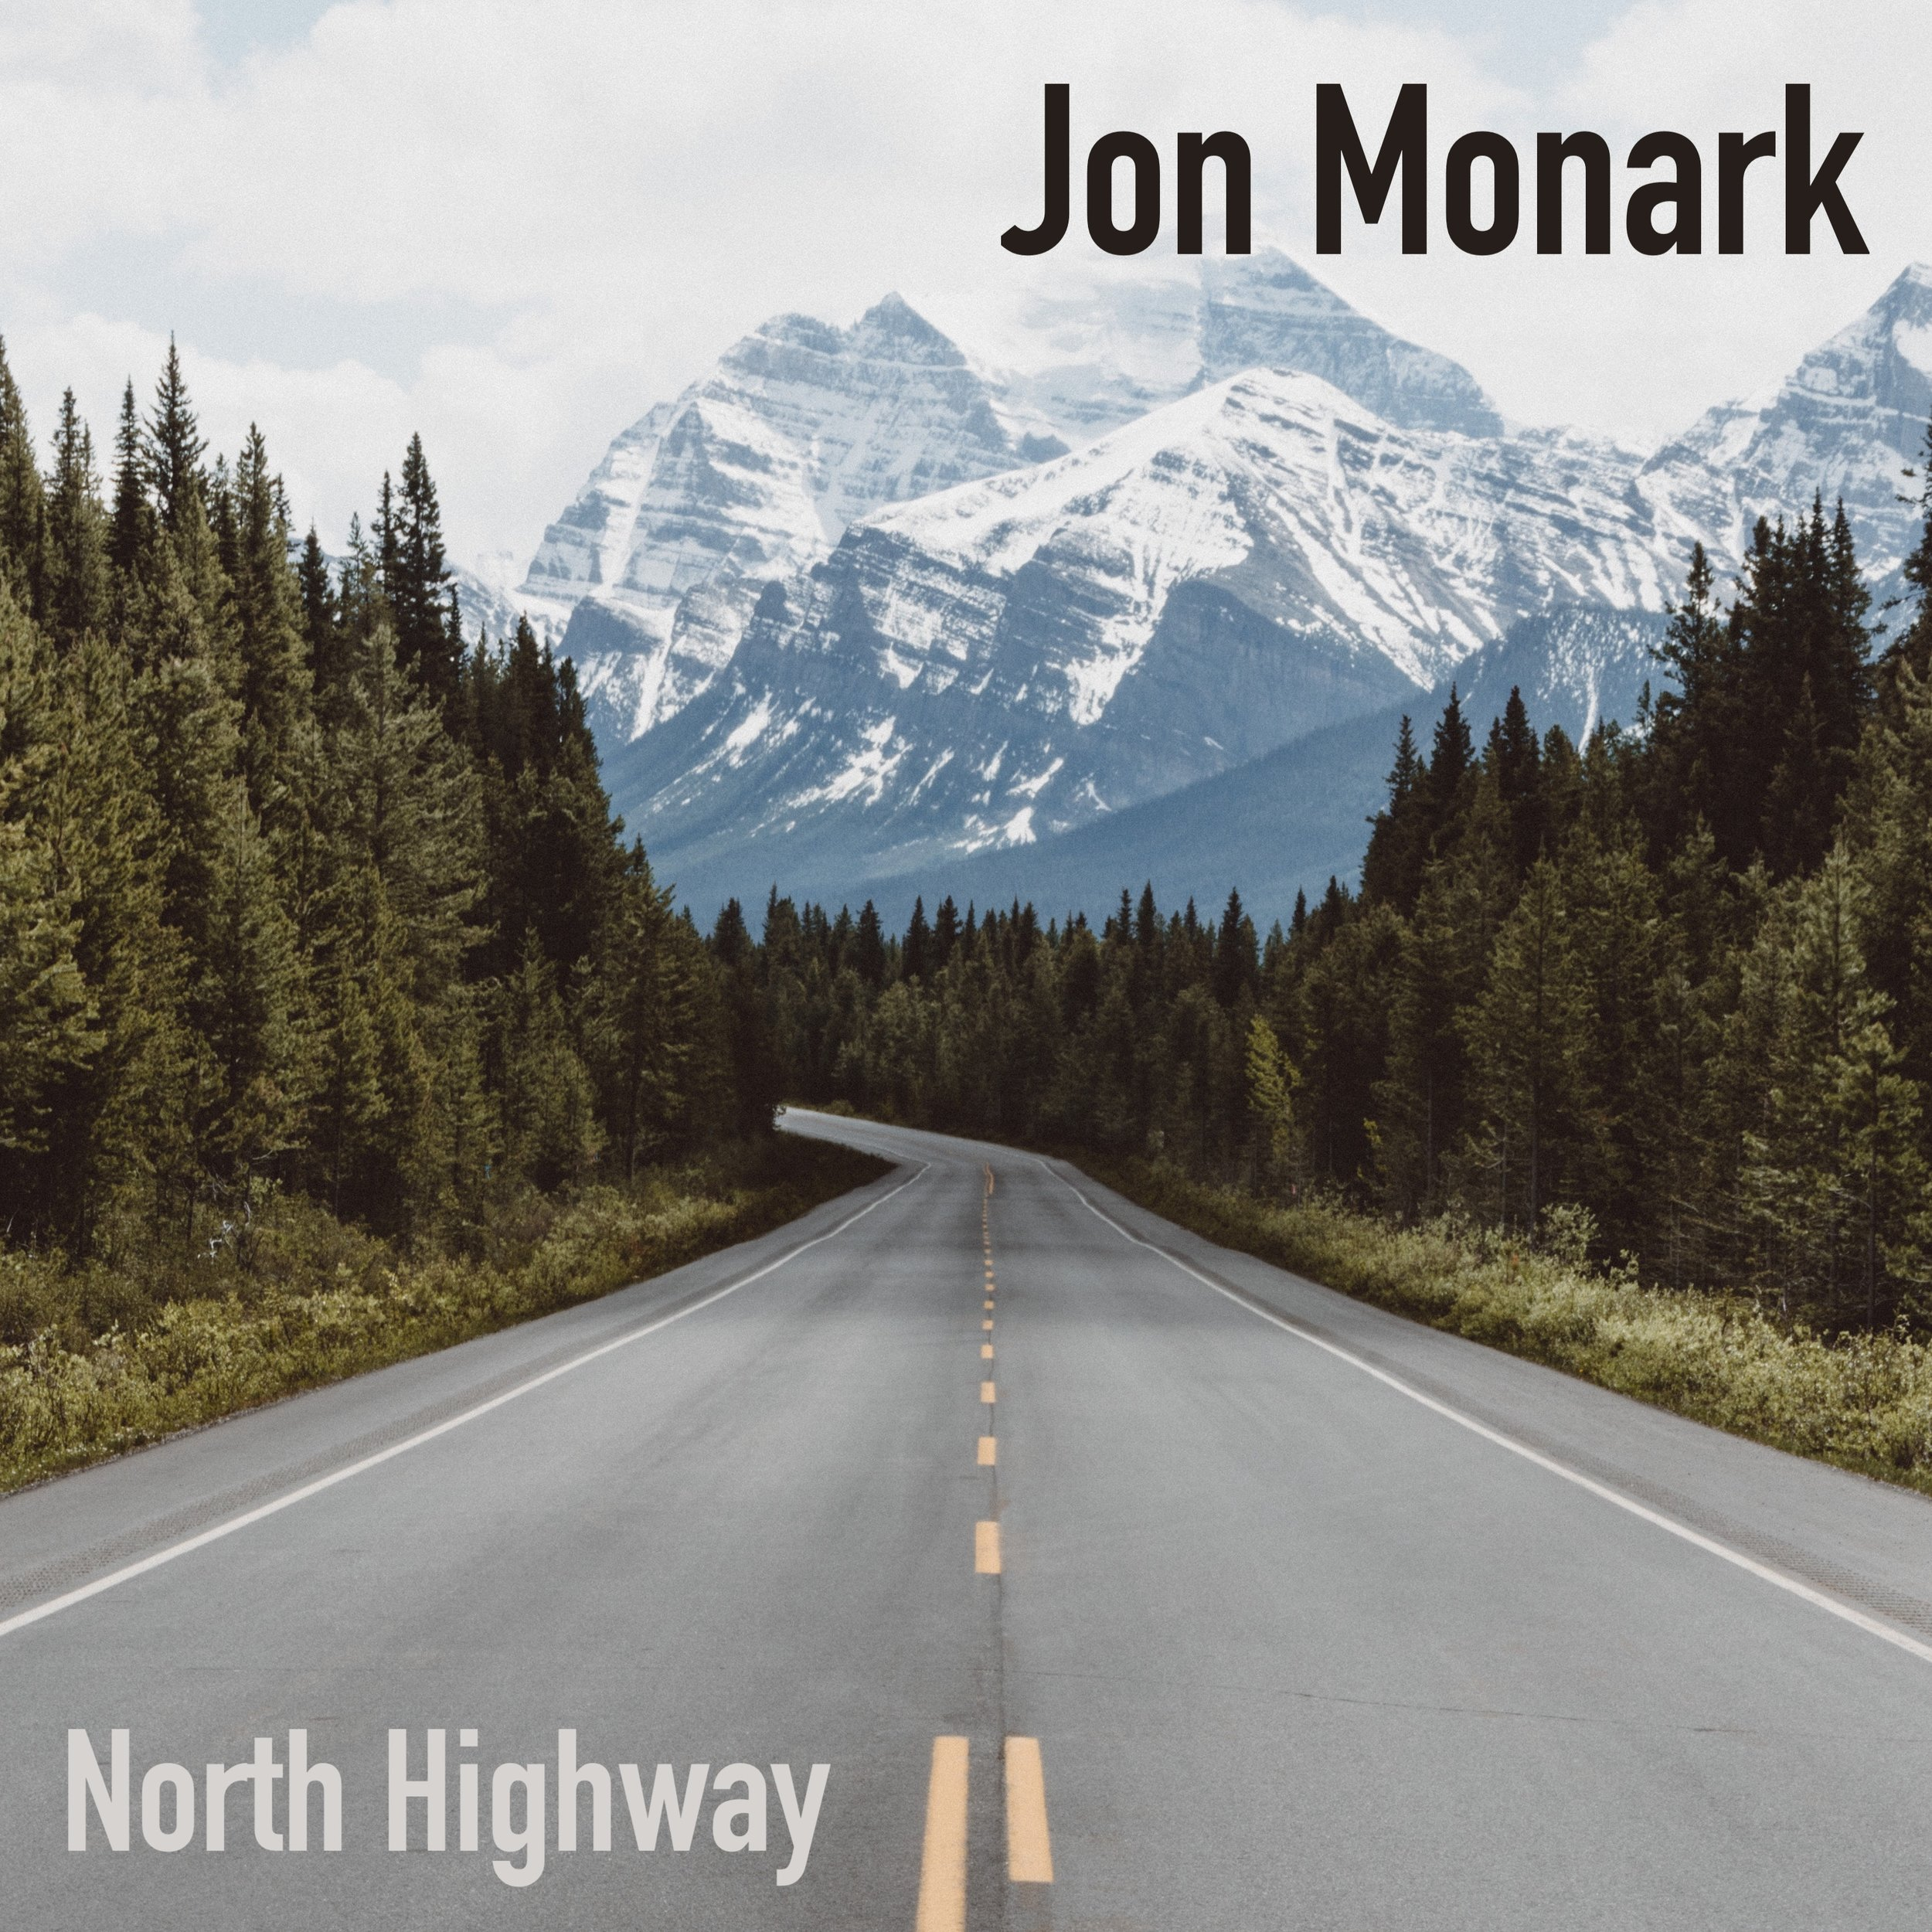 Jon Monark - North Highway Draft 1.jpg